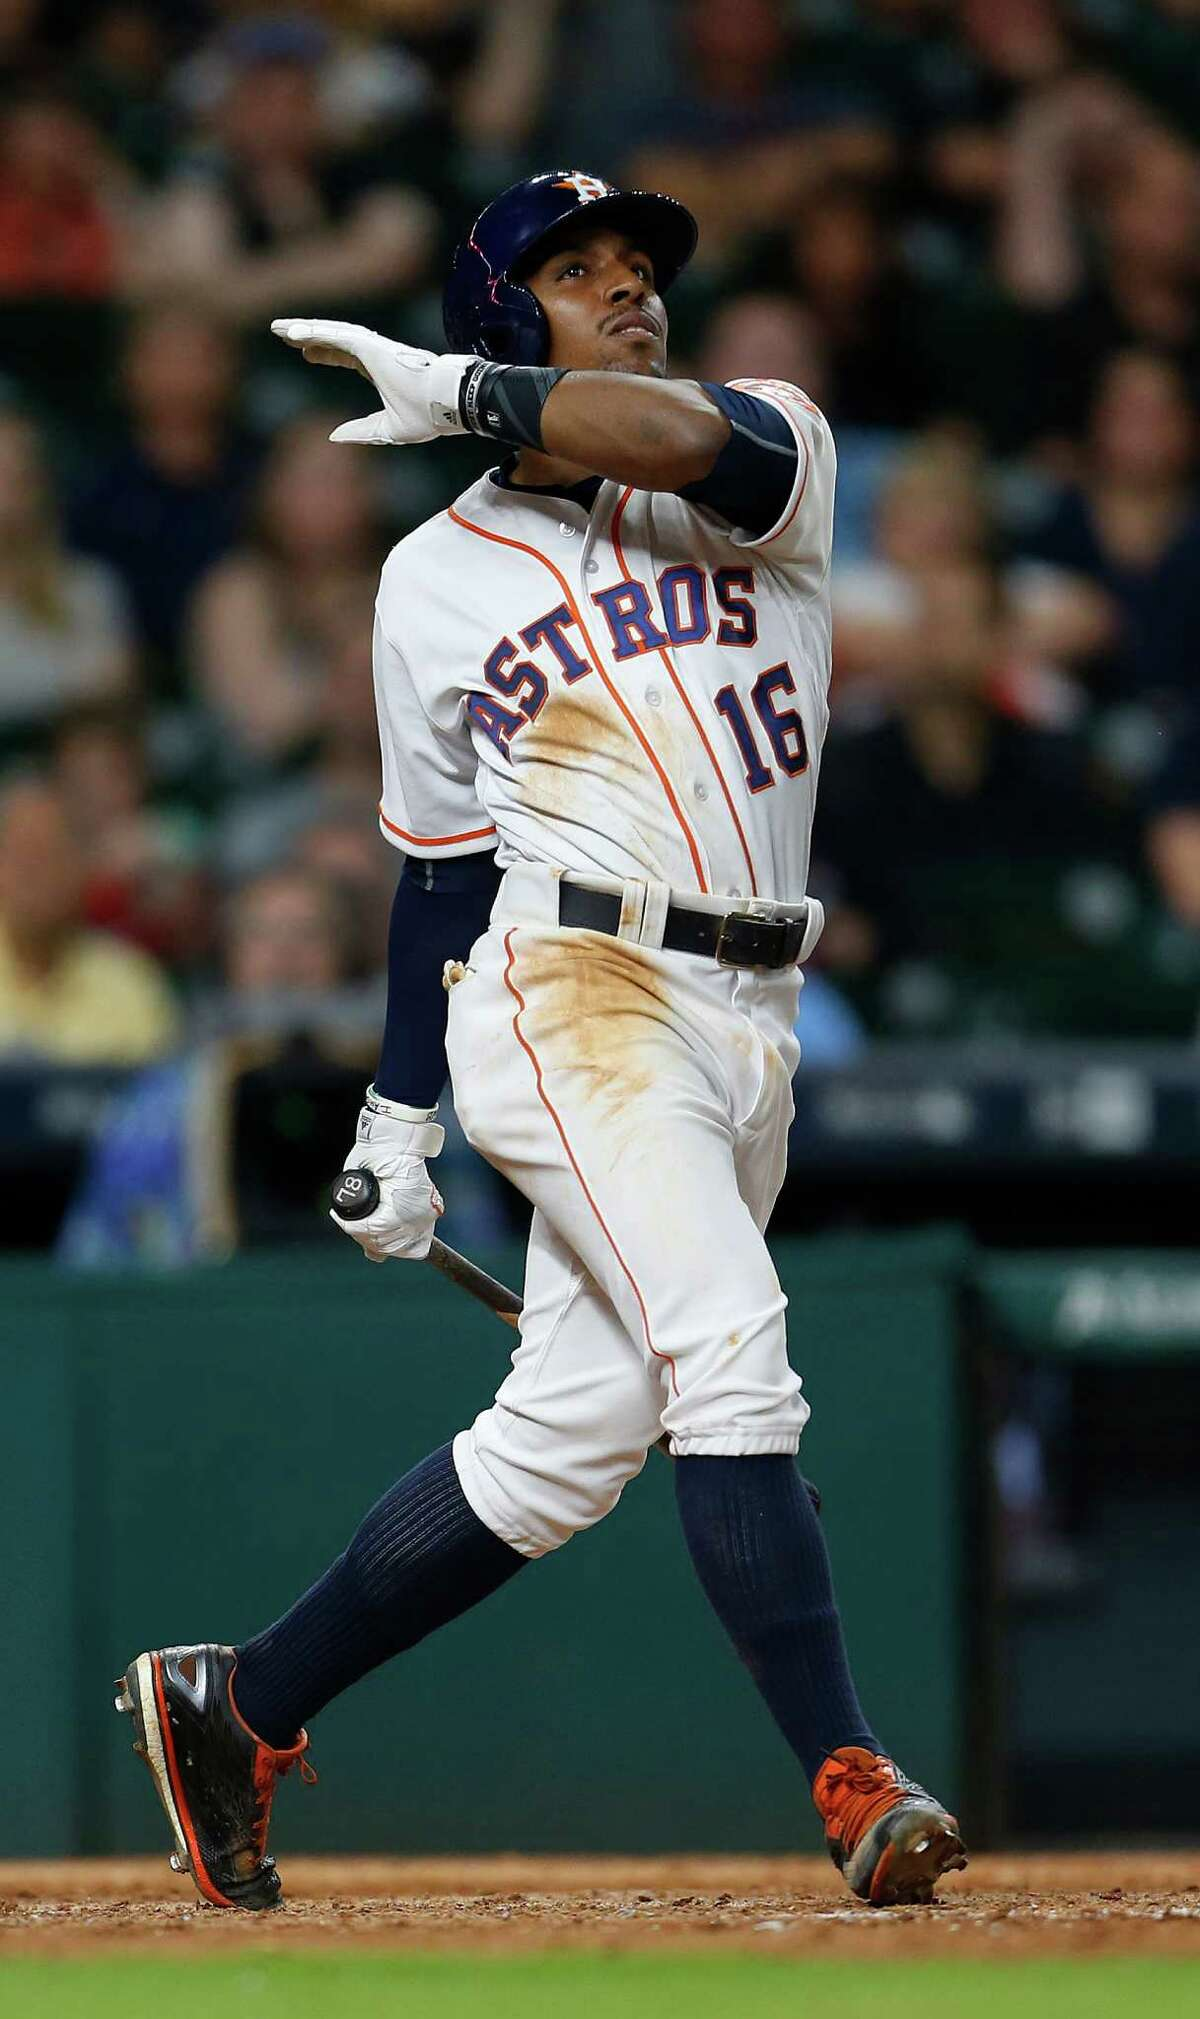 Houston Astros left fielder Tony Kemp (16) strikes out during the tenth inning of an MLB baseball game at Minute Maid Park, Tuesday, May 24, 2016.